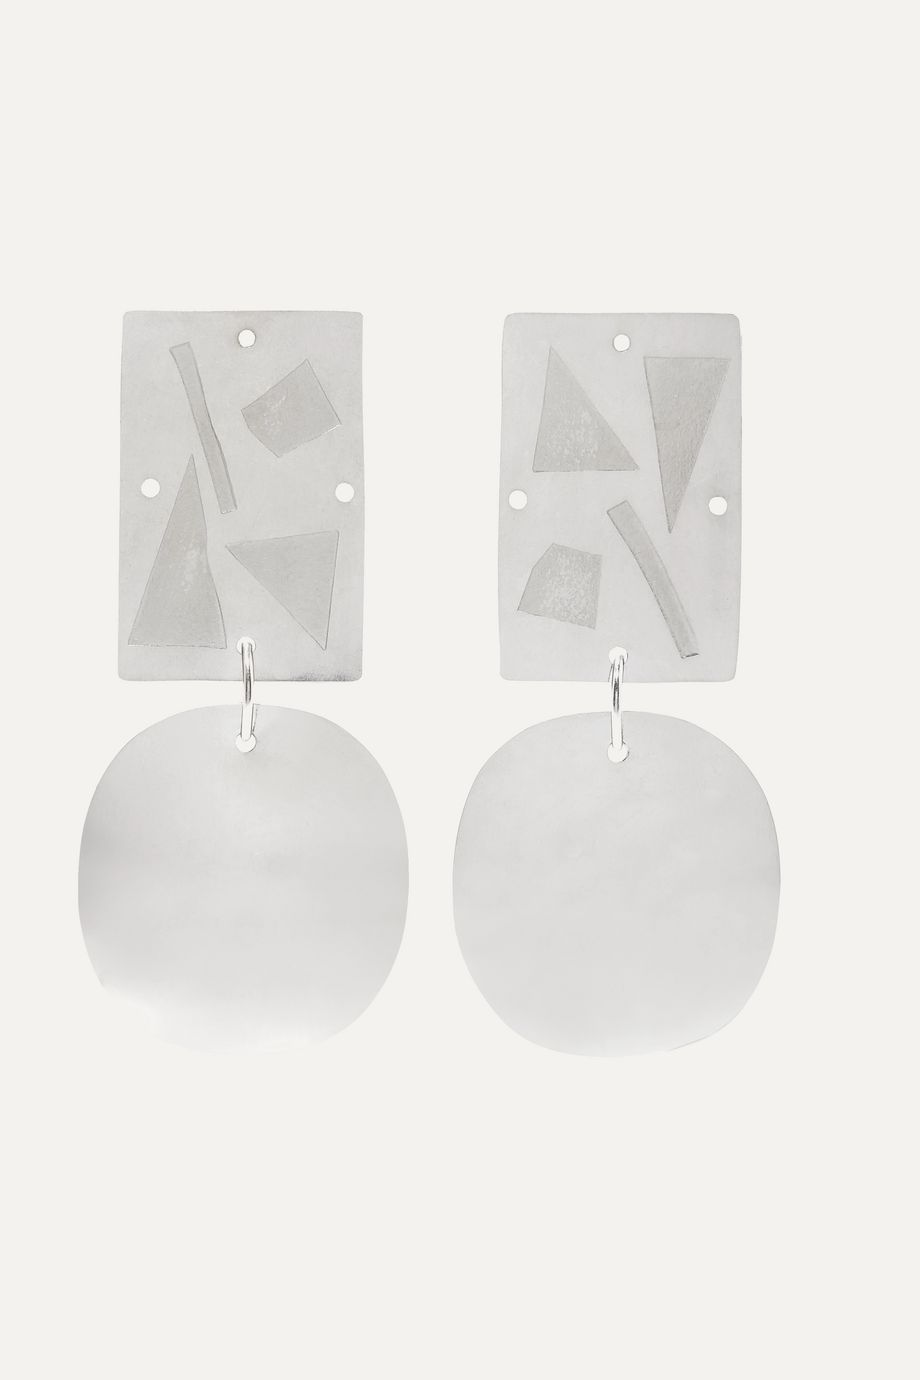 Annie Costello Brown Overt silver earrings